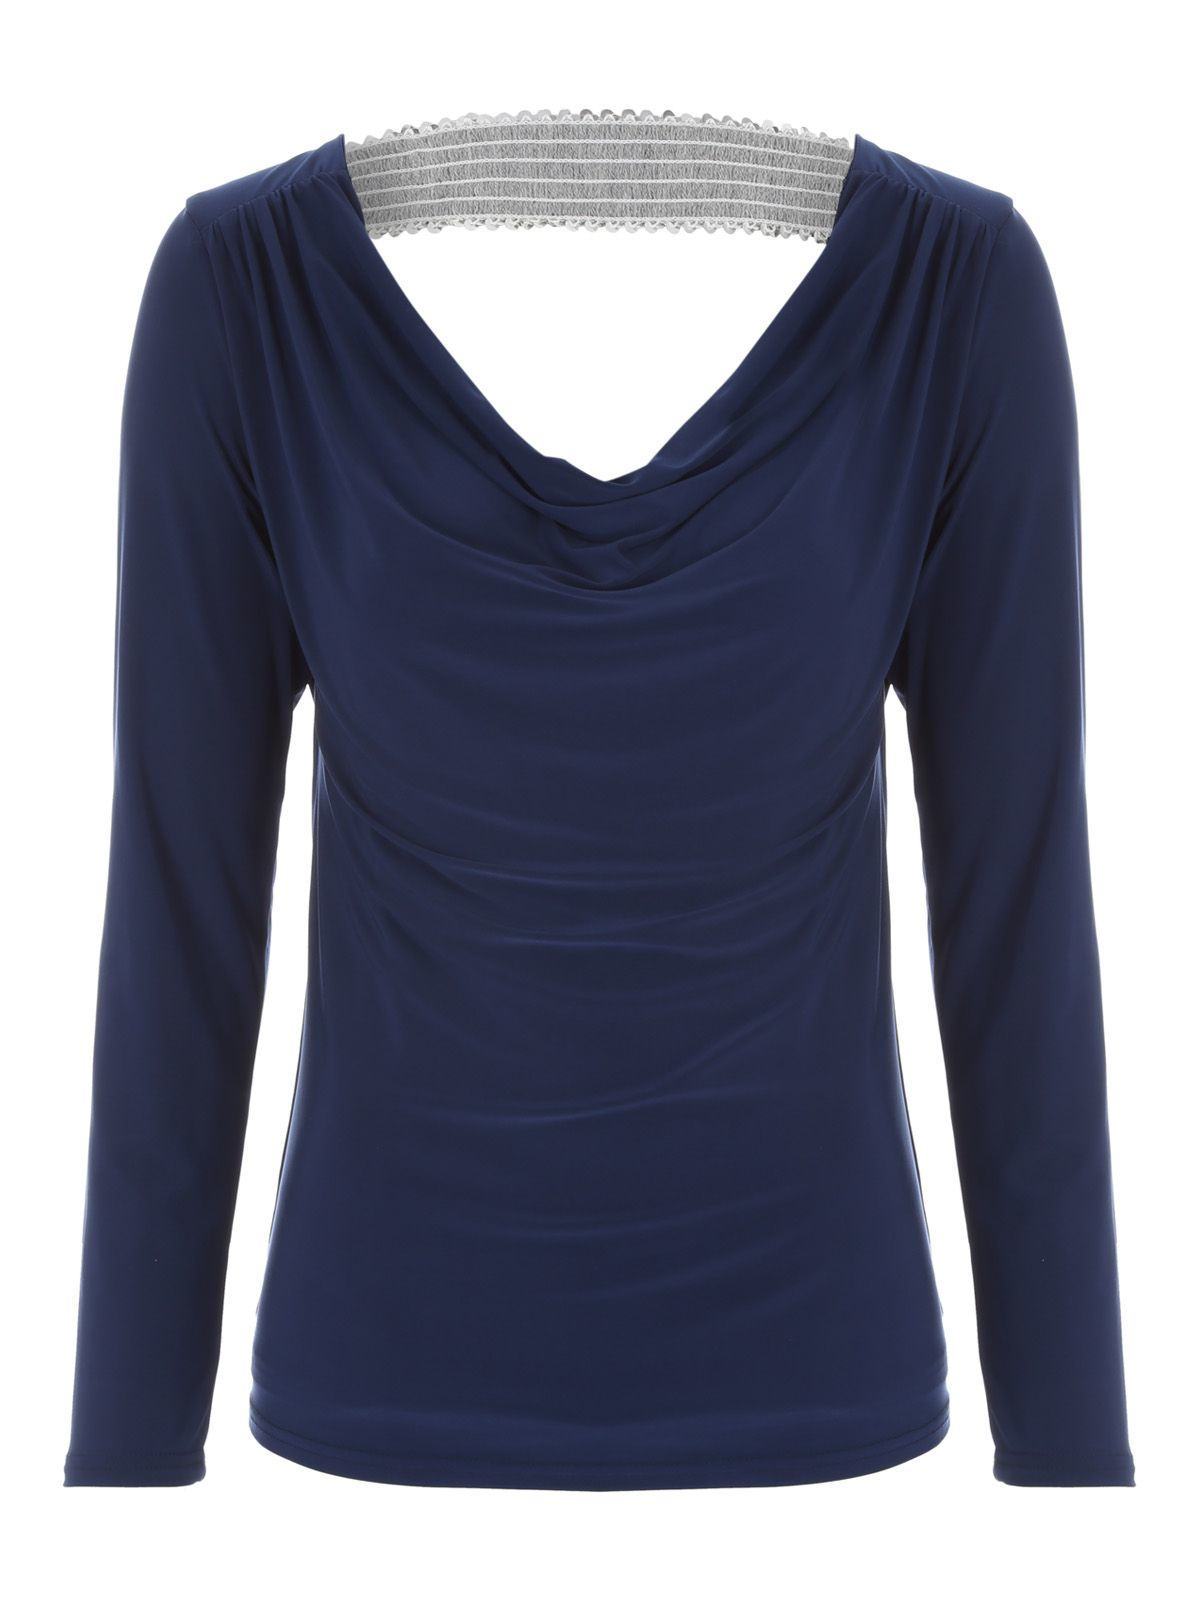 Womens Embelished Cowl Back Long Sleeve Top Jane Norman Cheap Sale Newest Buy Cheap Shop For For Sale Buy Authentic Online Discount Sast Best Sale Cheap Price qCgmi34